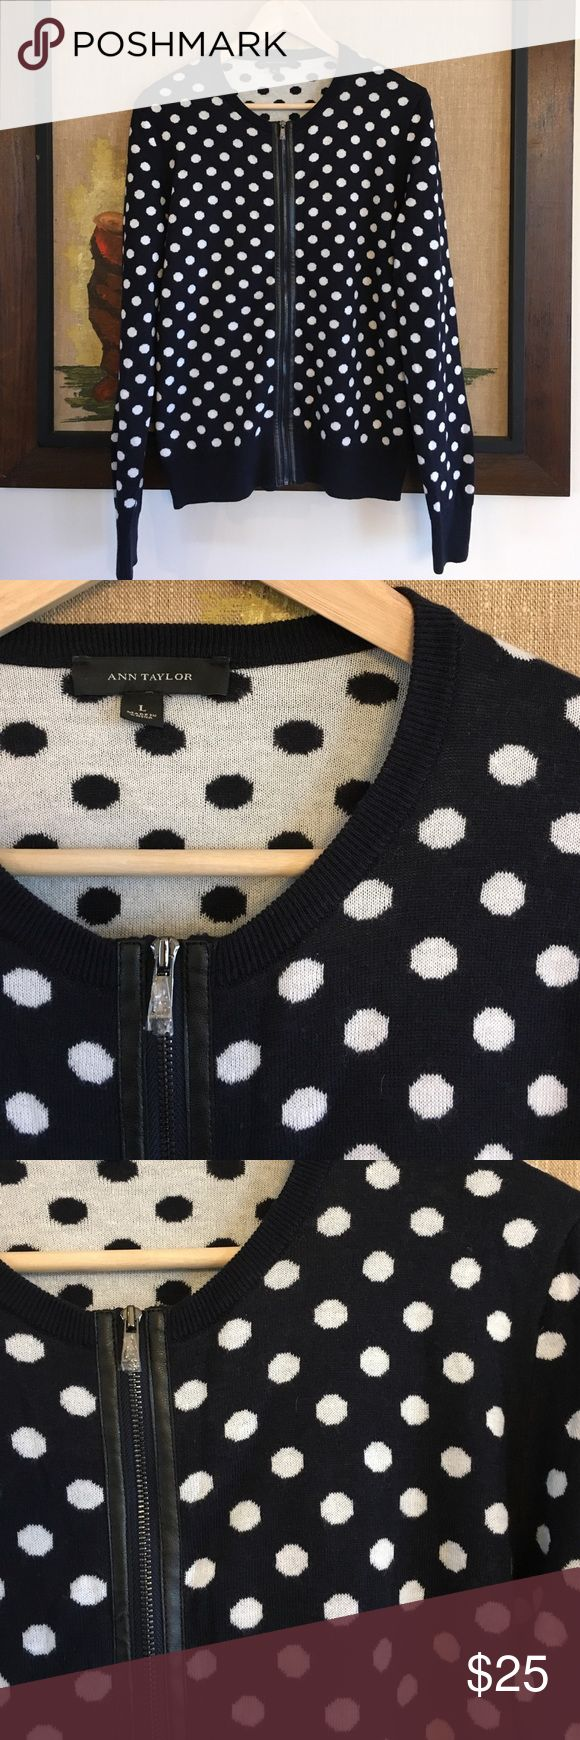 NWOT Ann Taylor Zip Up Cardigan Adorable navy and cream polka dot zip up Cardigan by Ann Taylor with faux leather zipper accent. New, never worn, still has protective cover over zipper. Ann Taylor Sweaters Cardigans